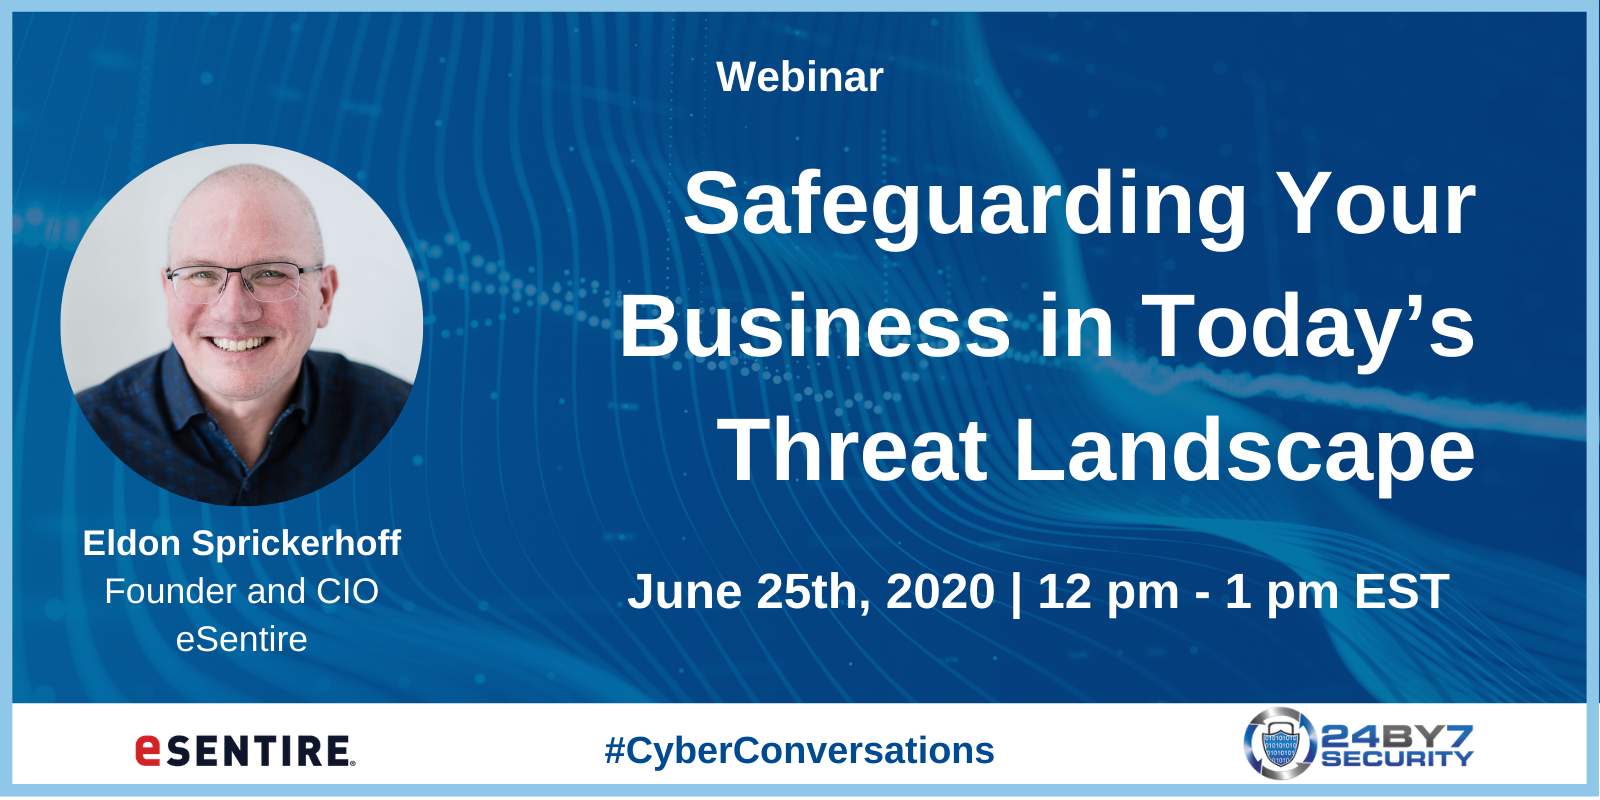 Safeguarding Business Threat Landscape Webinar 24By7Security